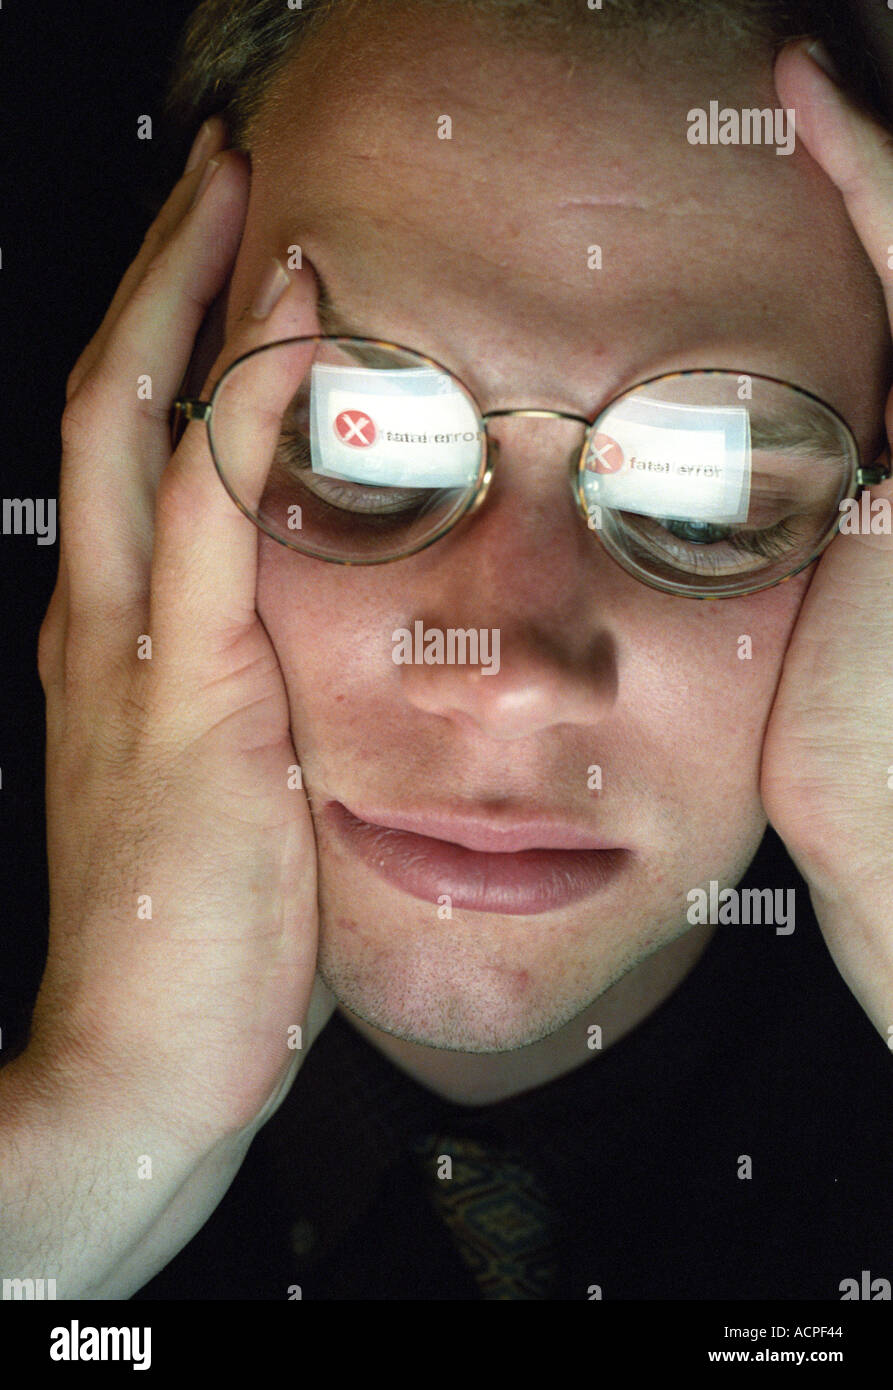 man looking at computer with FATAL ERROR reflected in glasses computer crash idea concept - Stock Image